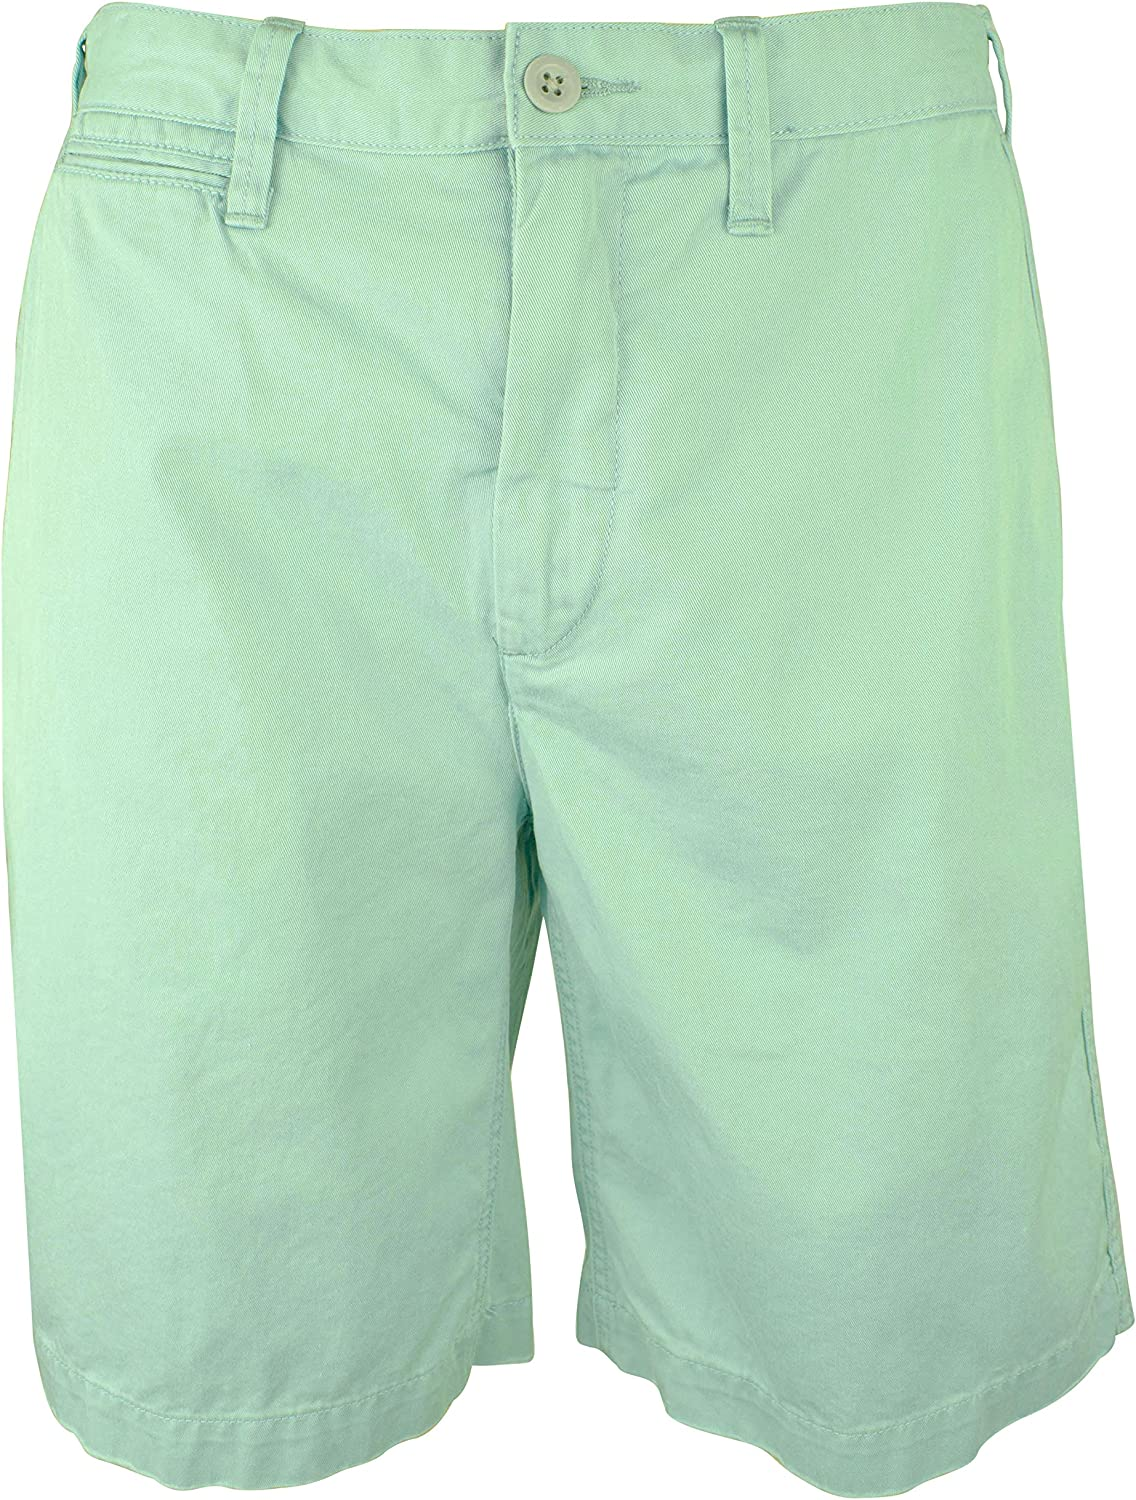 """Ralph Lauren Polo Men's Relaxed Fit Cotton Twill 10"""" Chino Flat Front Shorts"""